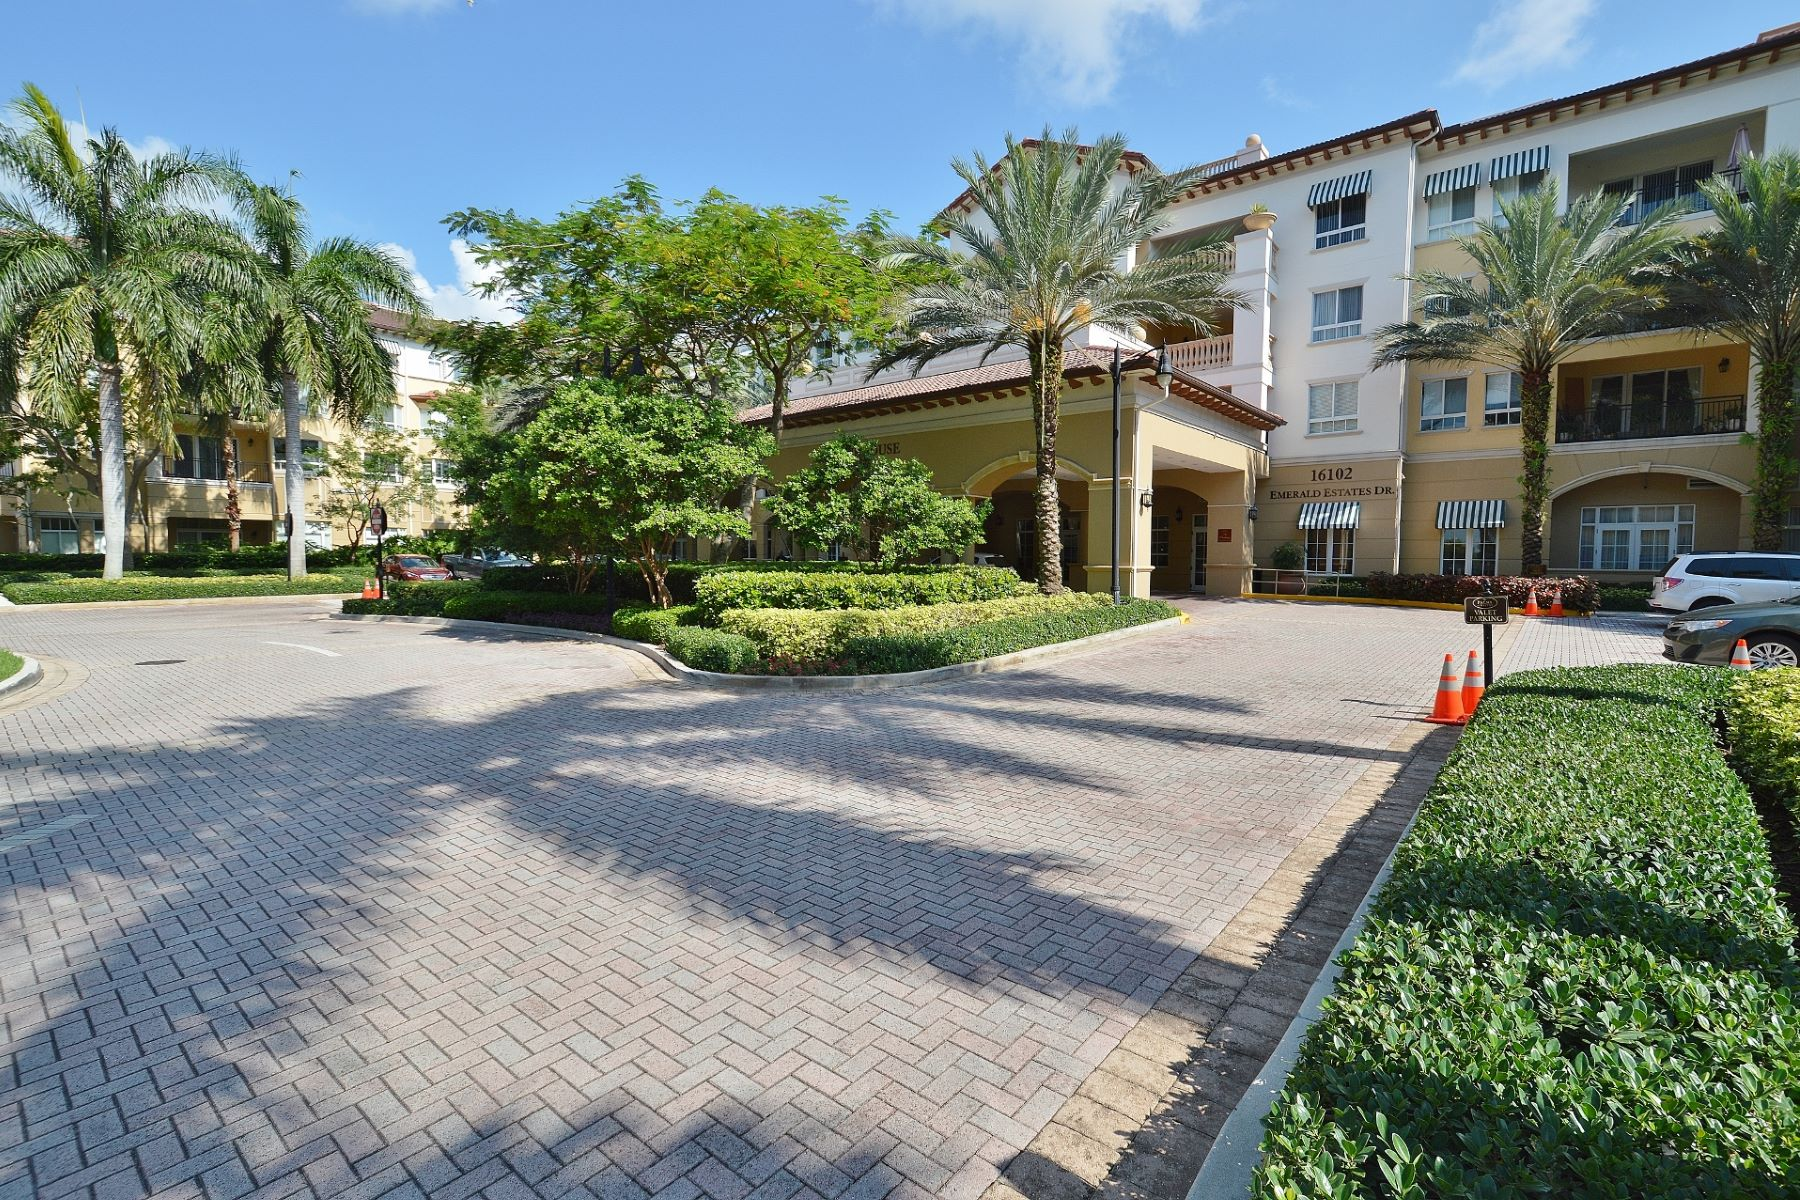 Piso por un Venta en 16102 Emerald Estates Dr #402 16102 Emerald Estates Dr 402 Weston, Florida, 33331 Estados Unidos